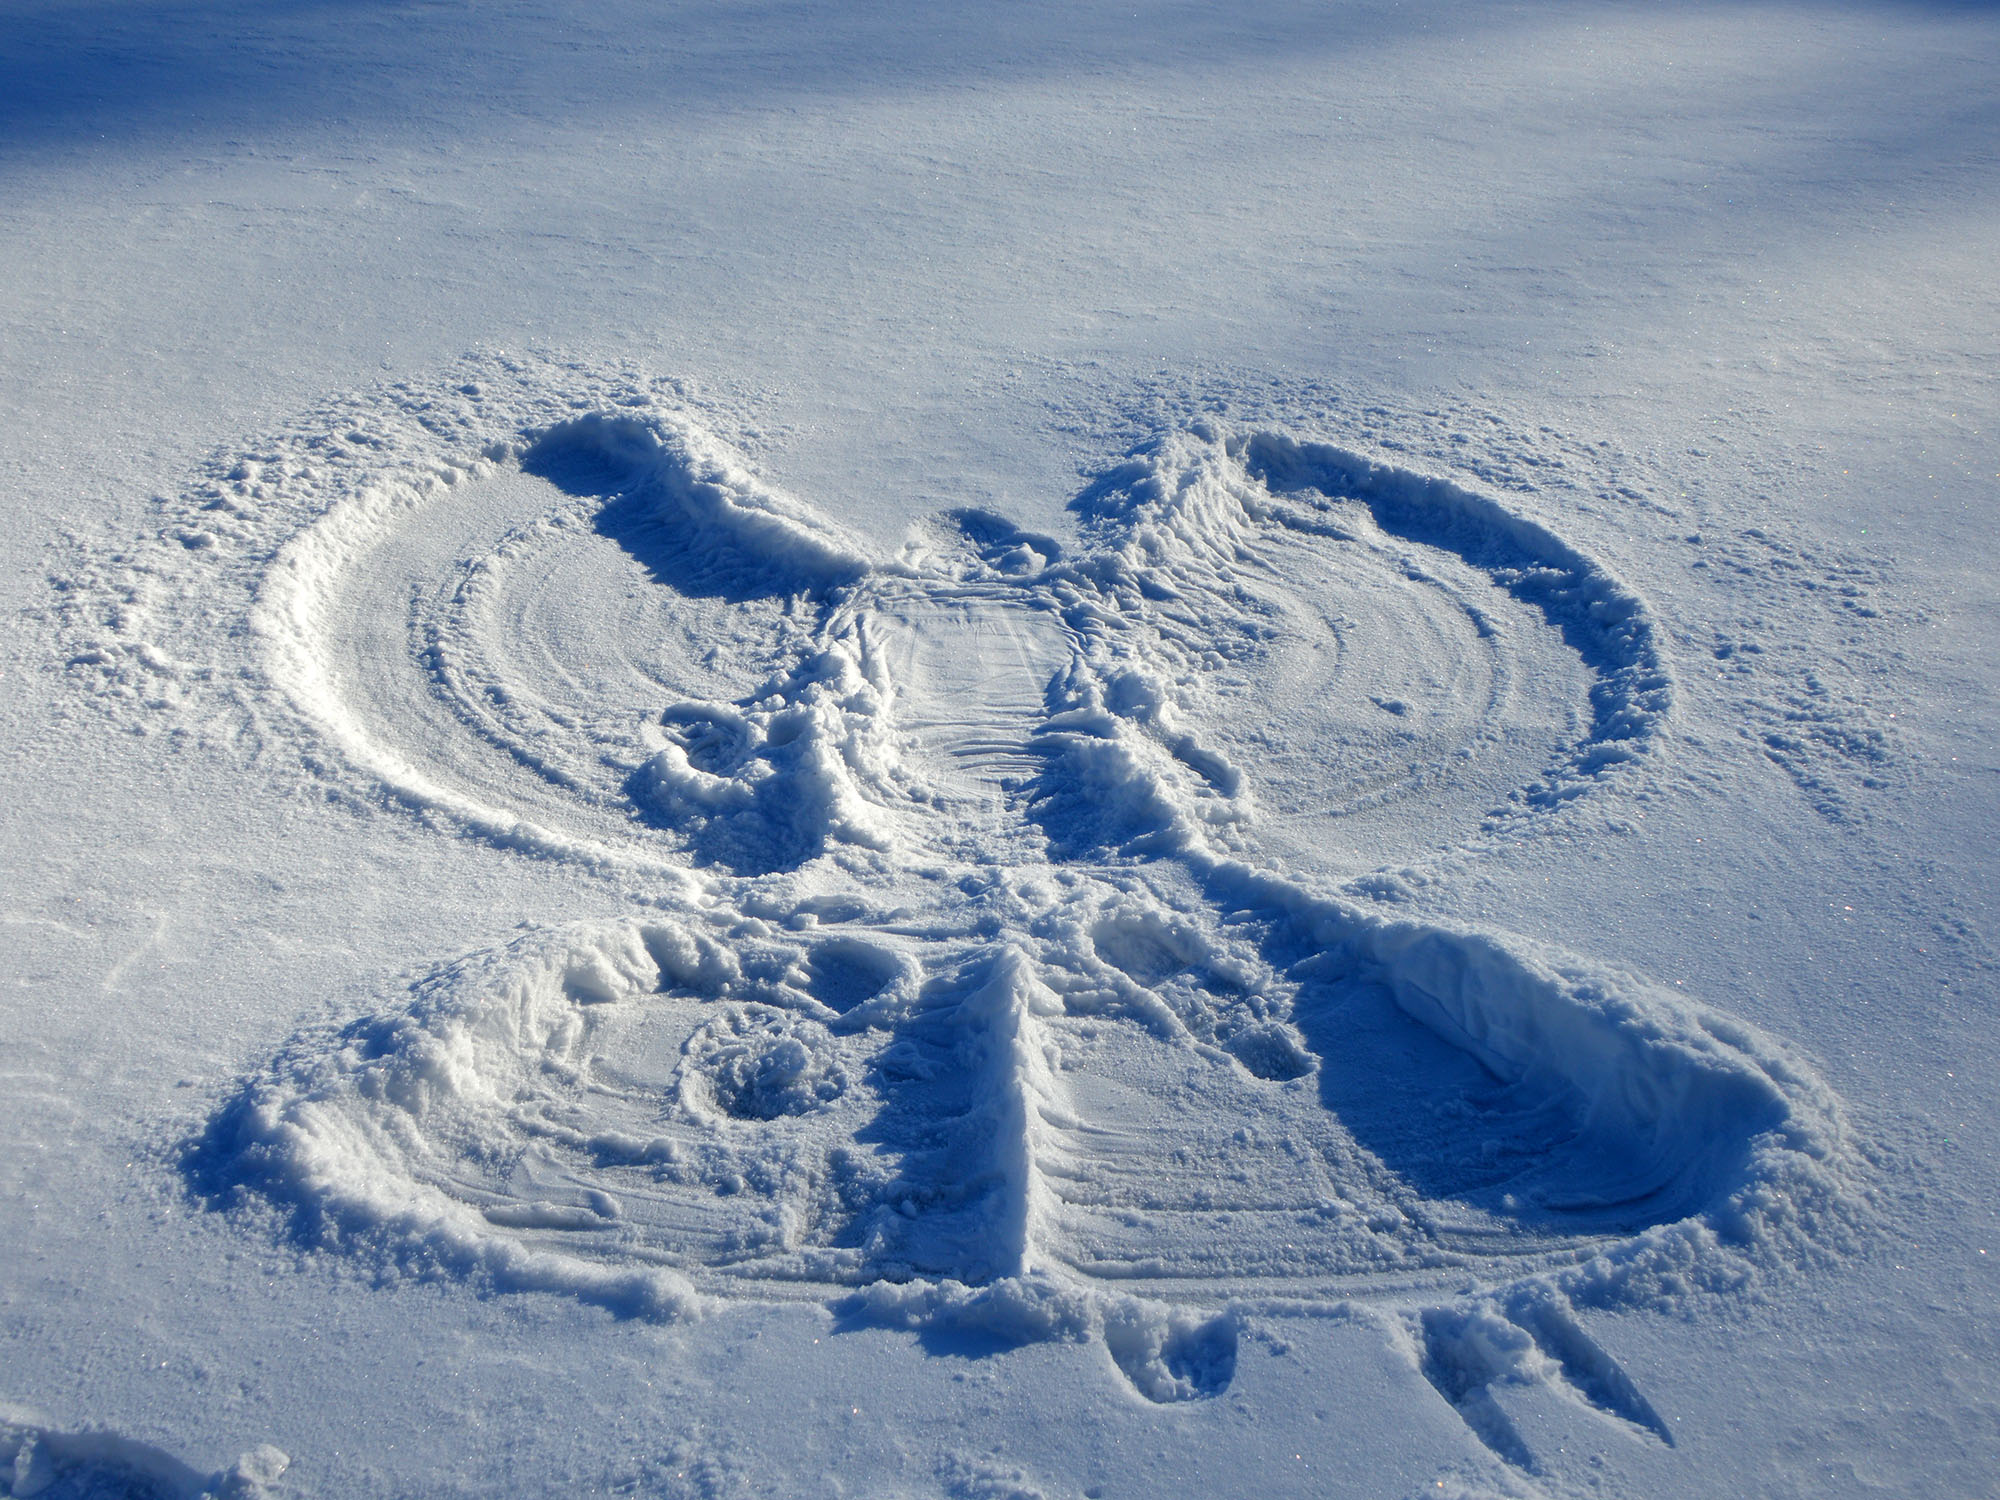 Snow angel photographed on February 29, 2016.